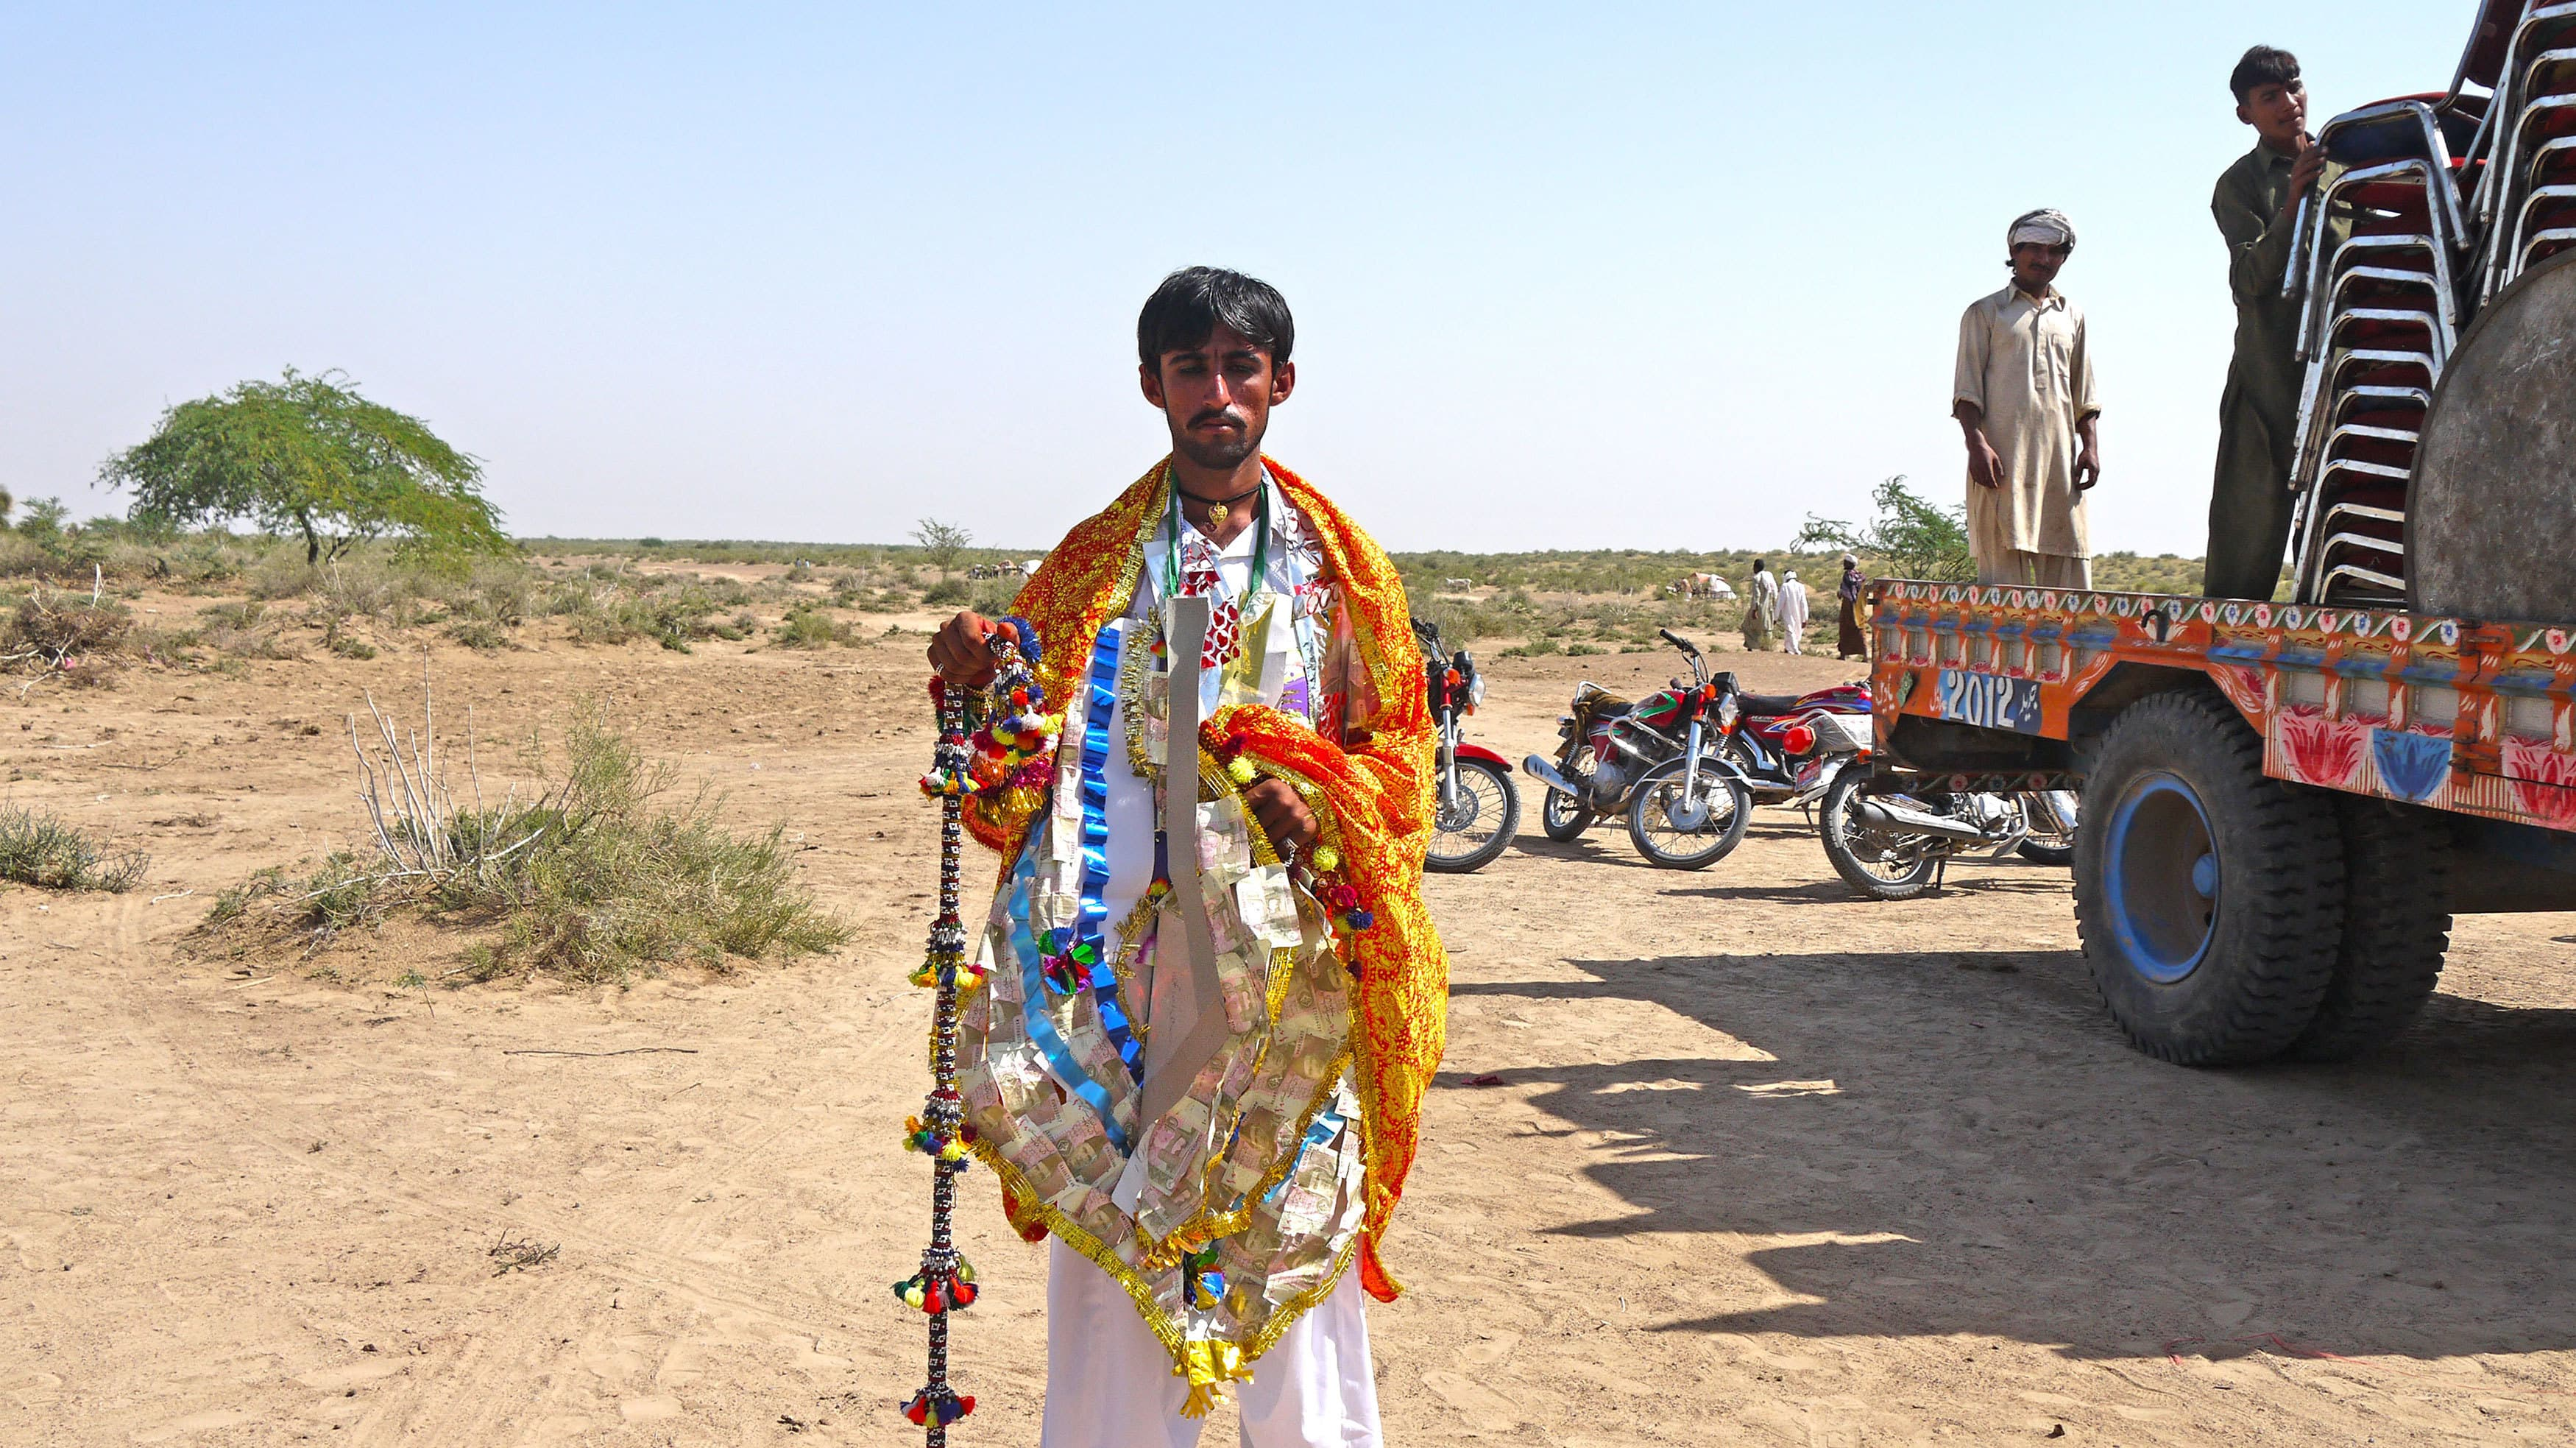 A groom at his wedding in Cholistan